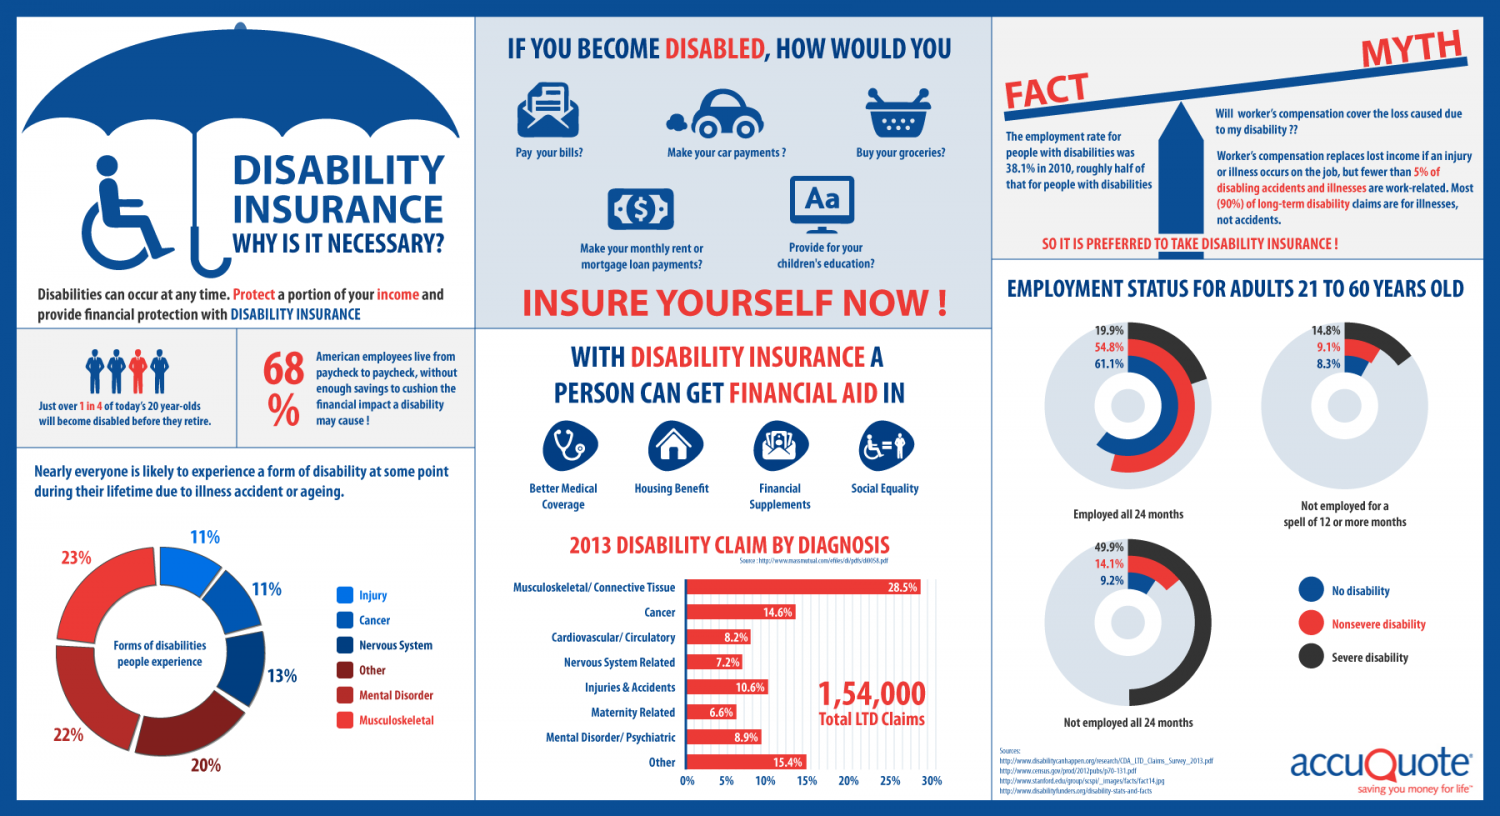 Disability Insurance - Why is it Necessary? | Visual.ly